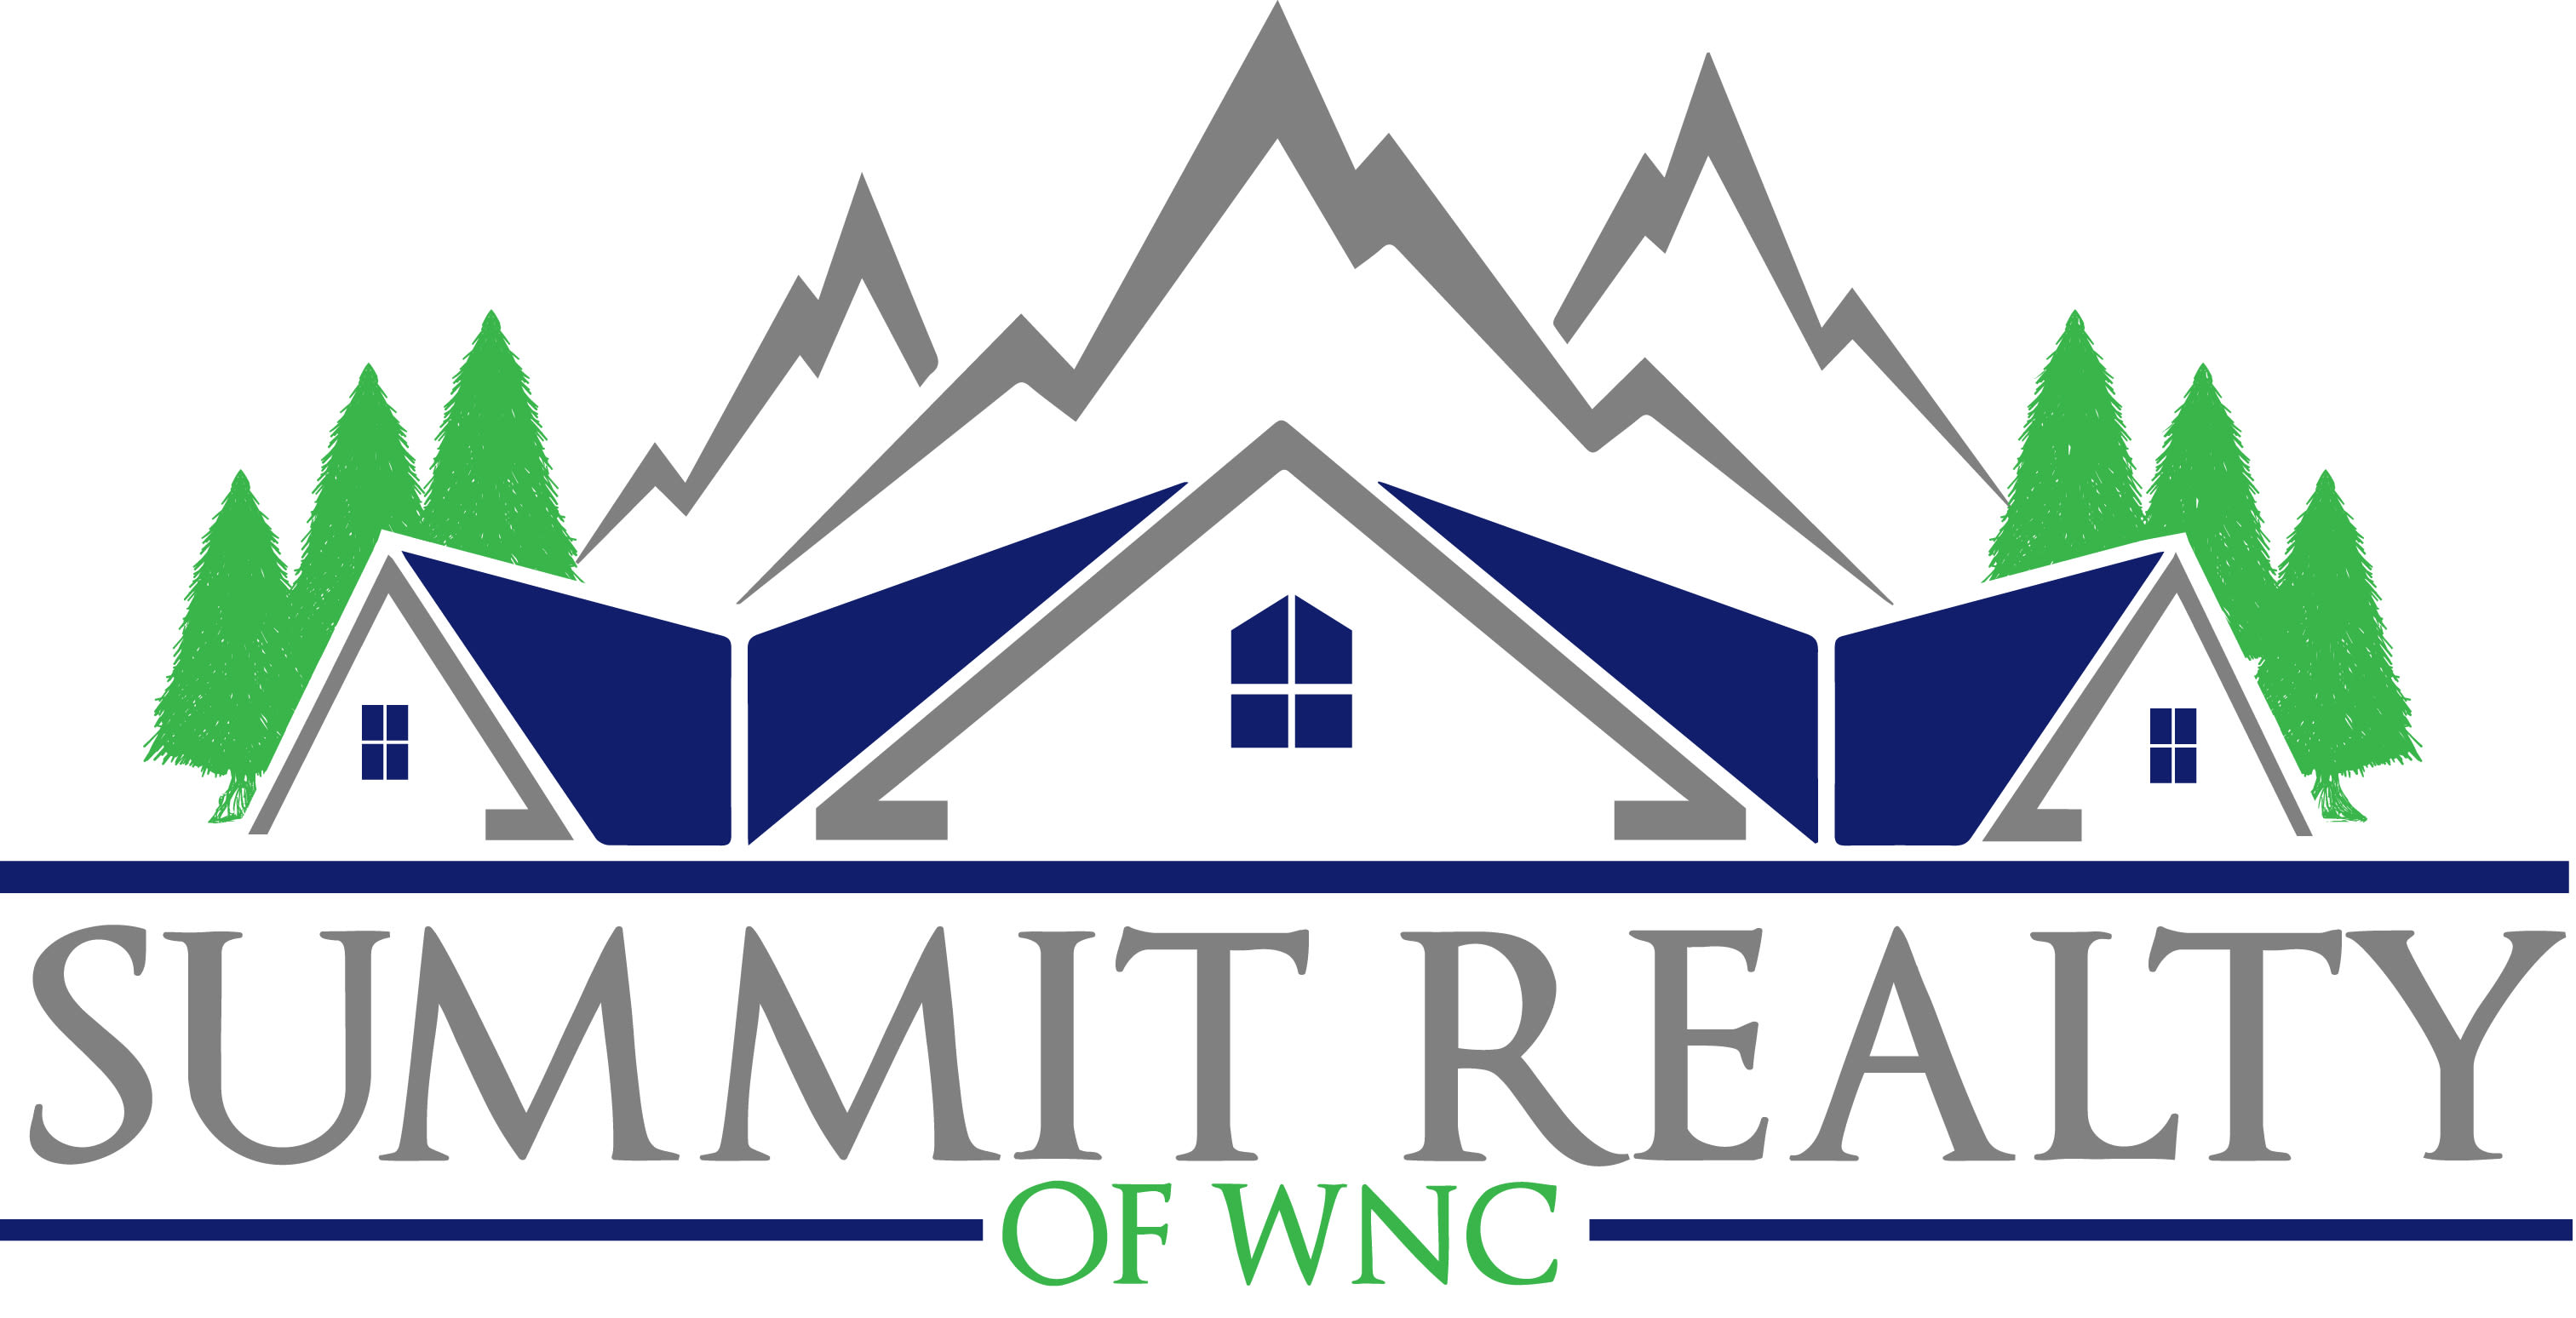 Summit Realty Of WNC, Inc